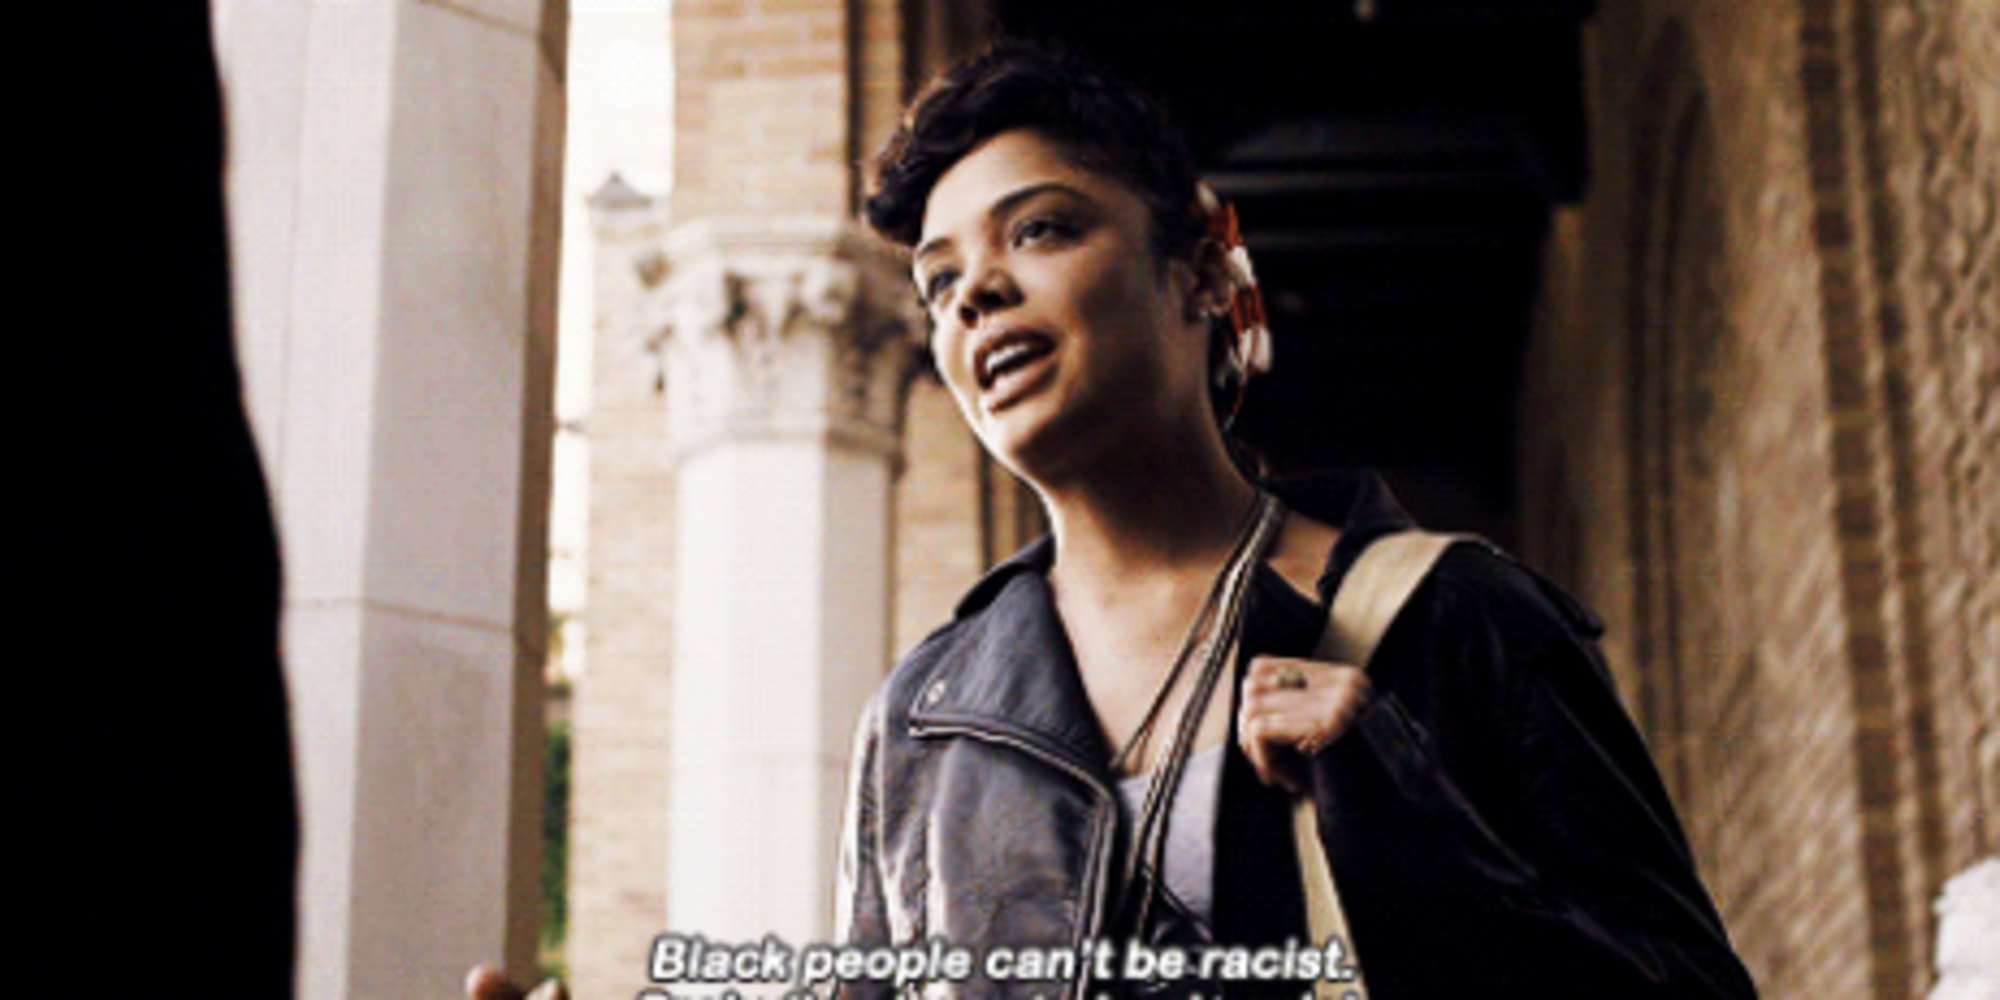 Reverse-Racism, black people, white people, racial insensitivity, ethnocentrism